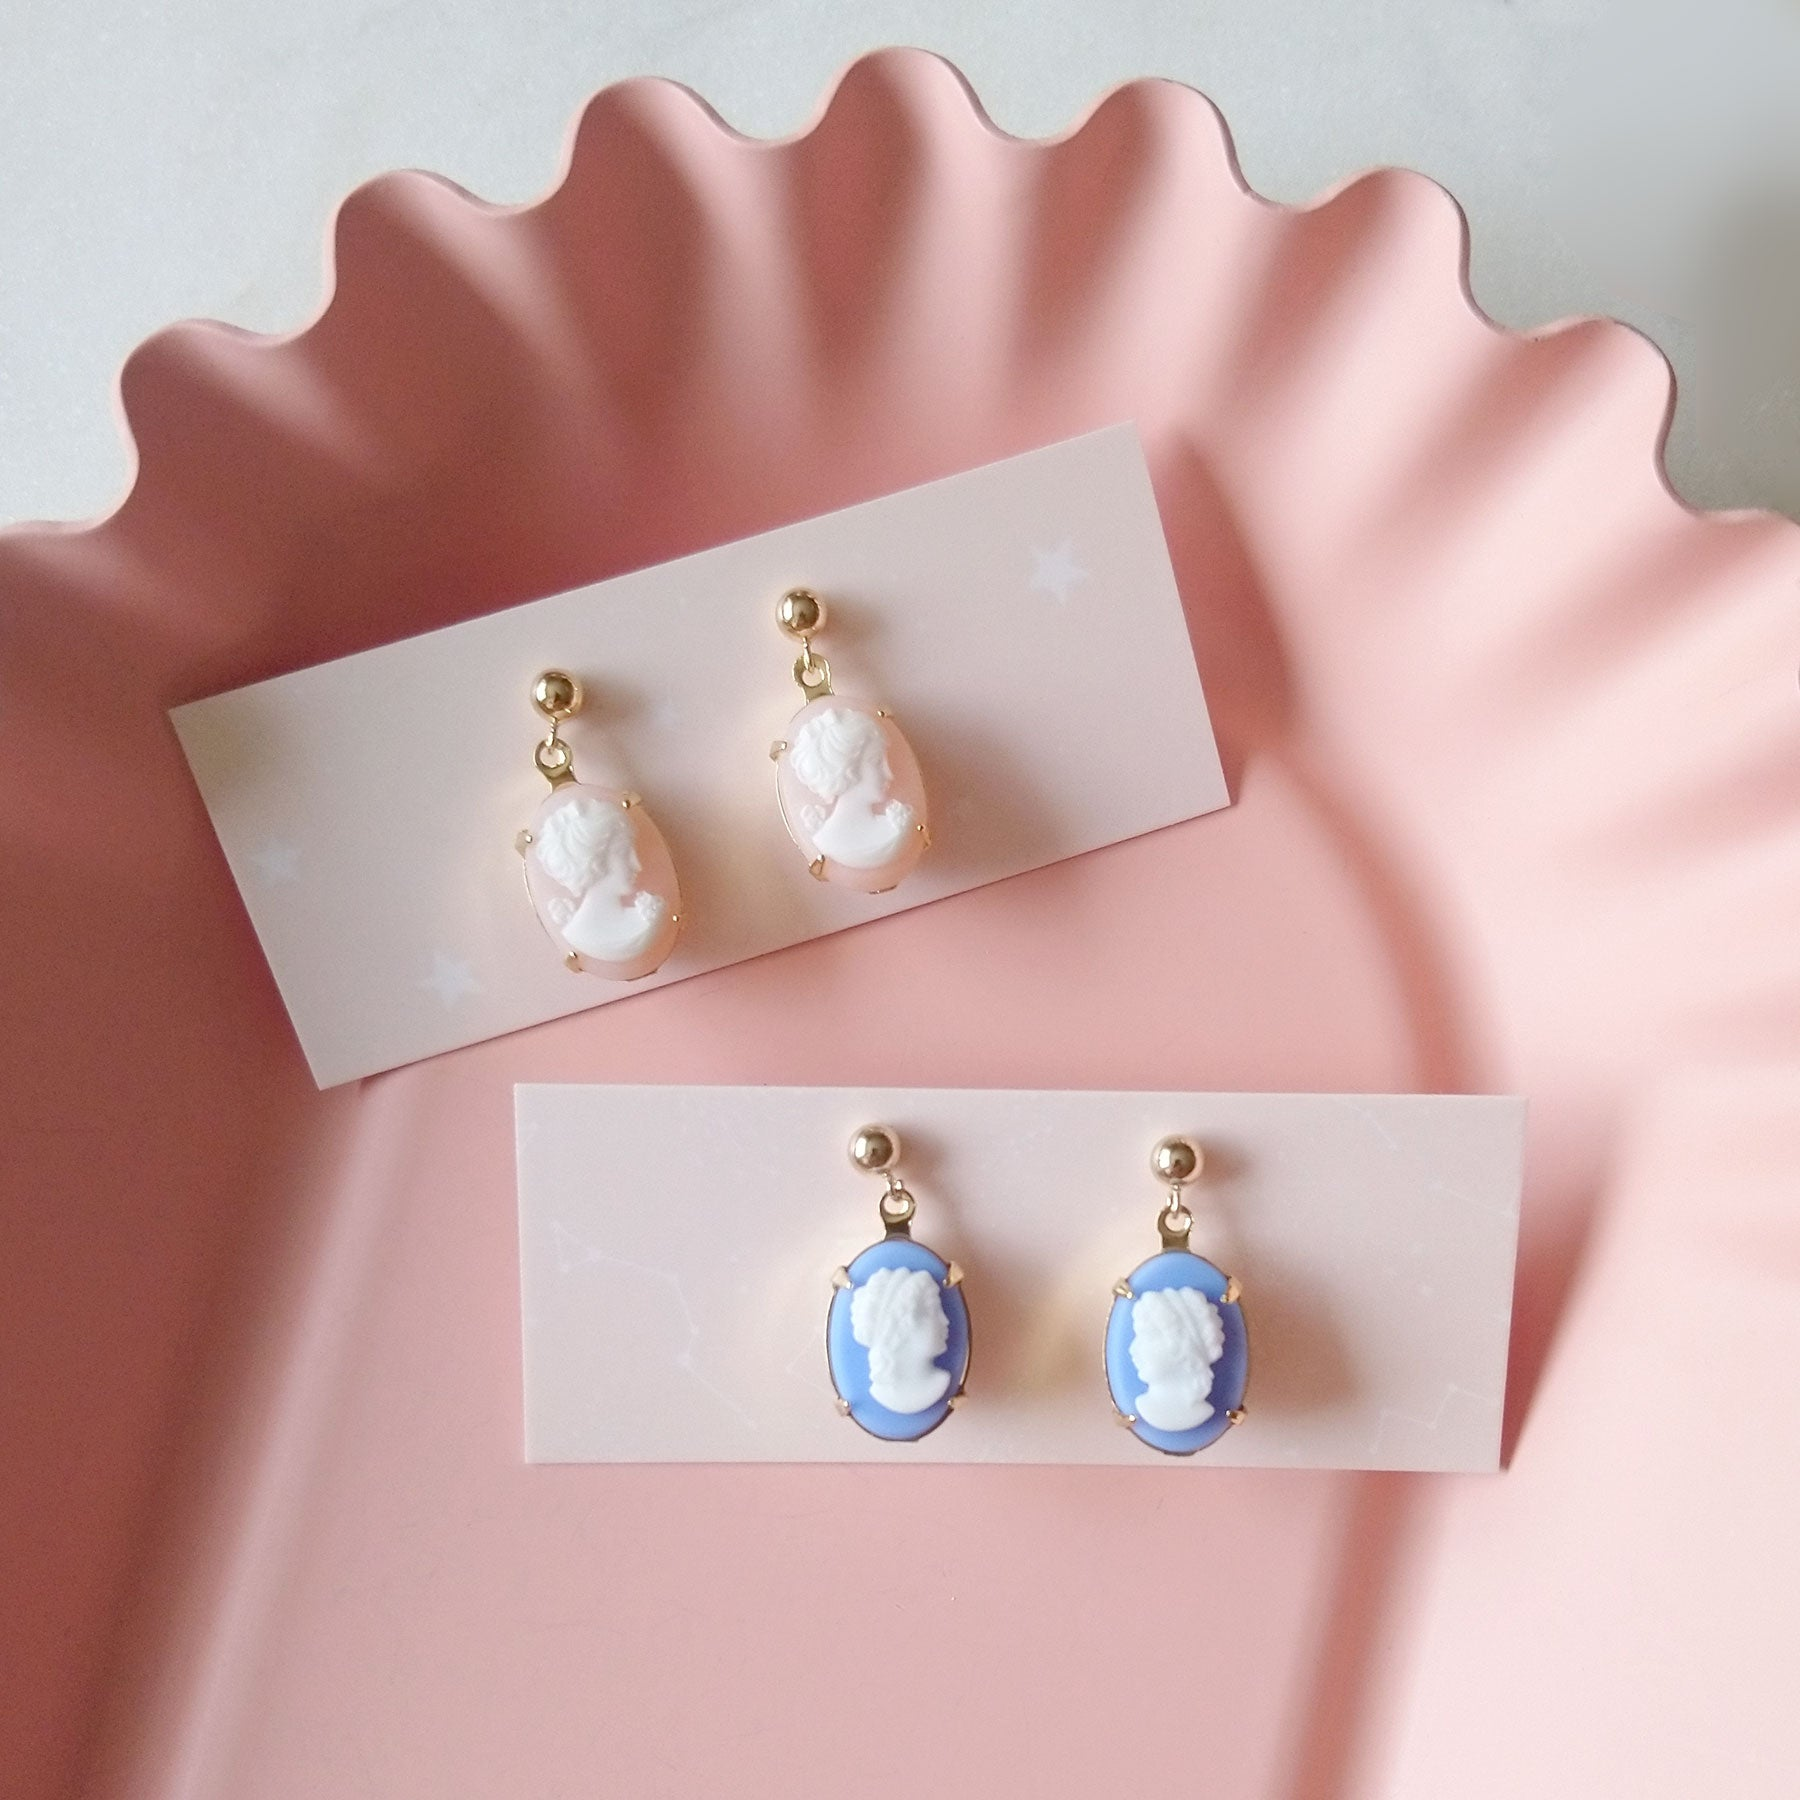 Cameo Drops Ear Posts in 14K gold filled (SD1679)